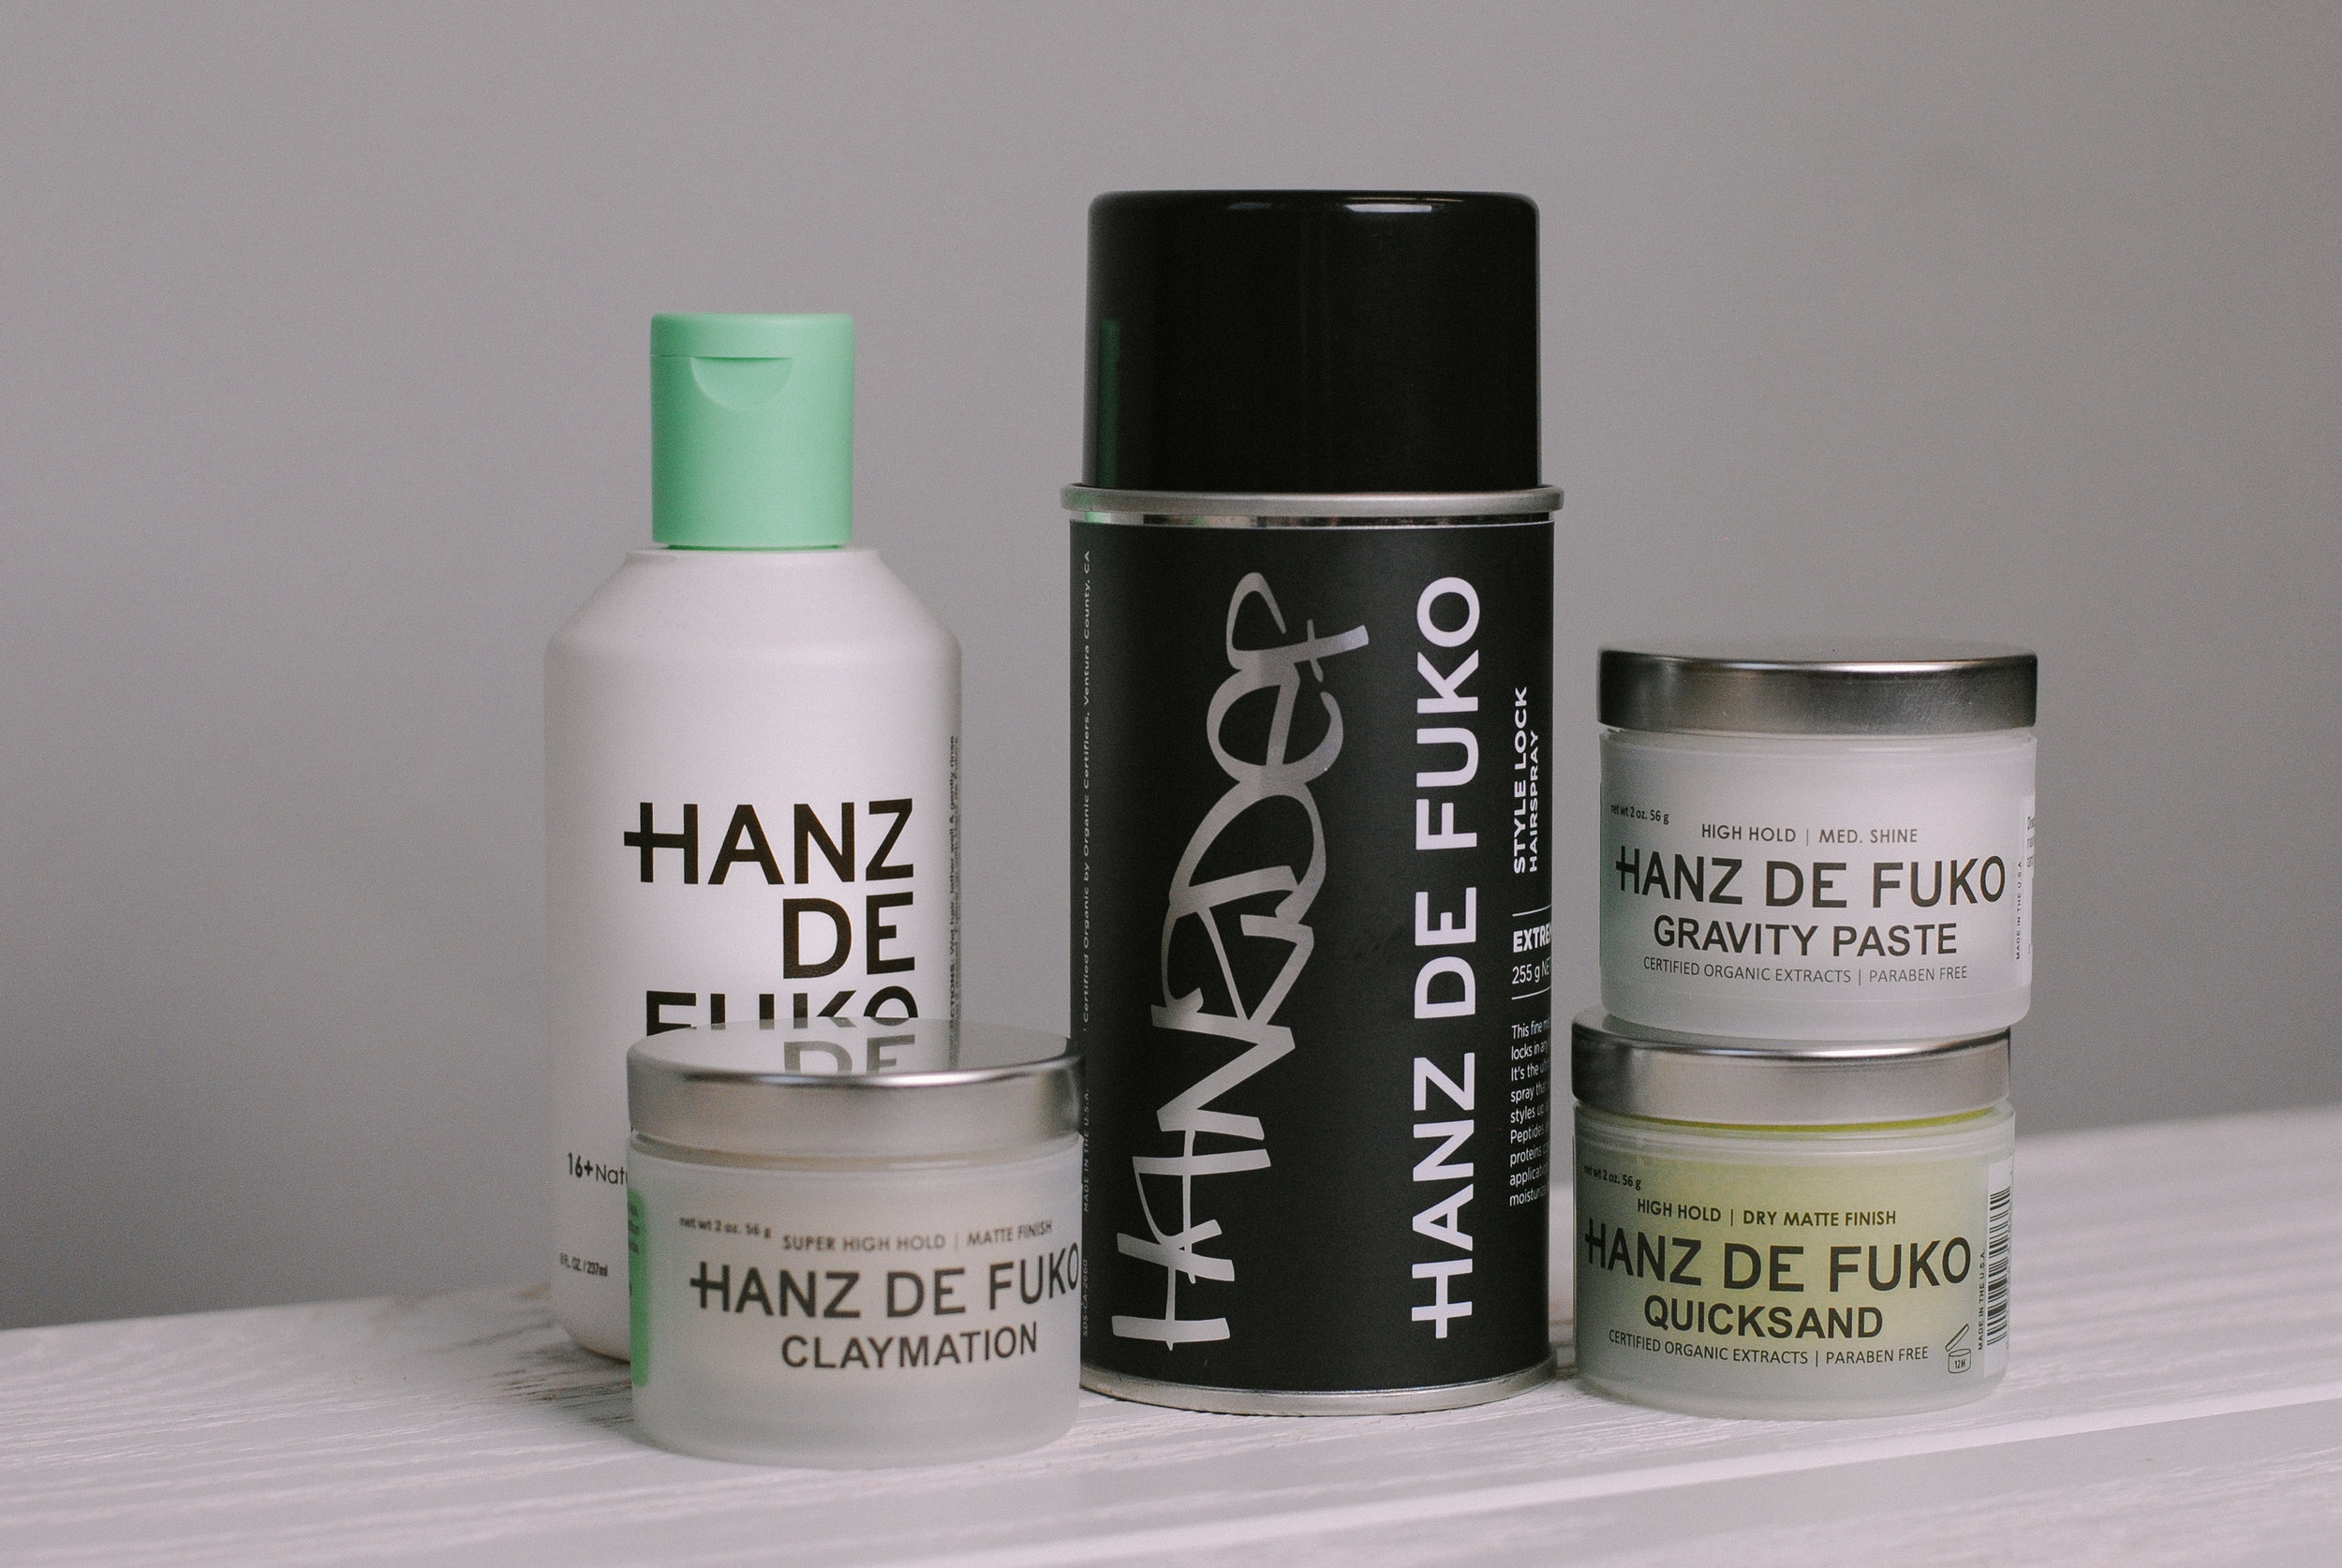 hanz de fuko hairspray at the qg